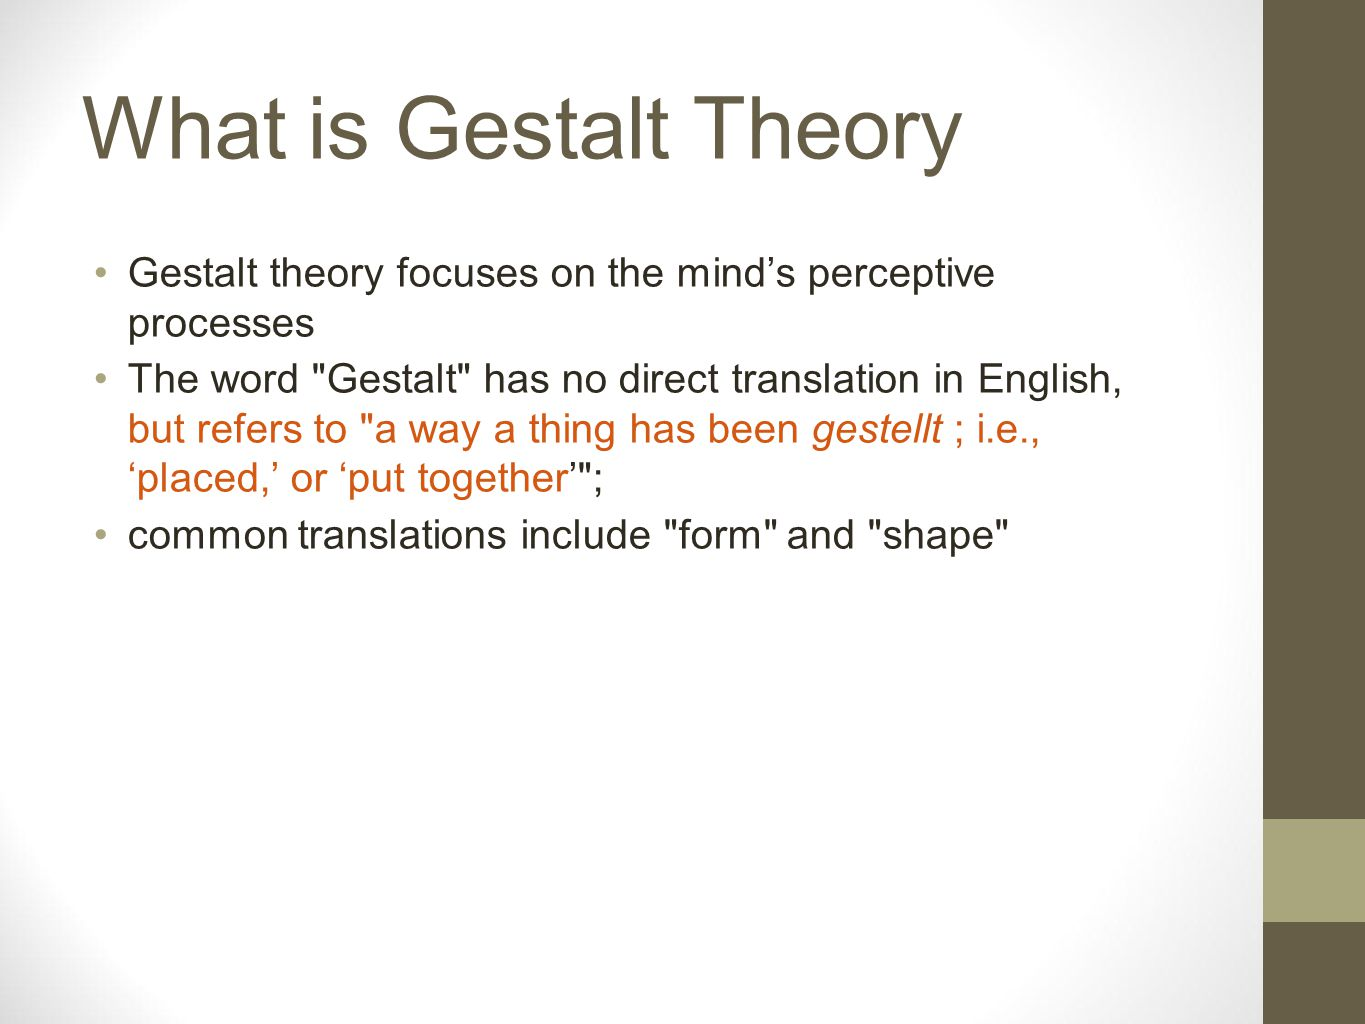 Design Theory Environment and Behavior. - ppt video online ...